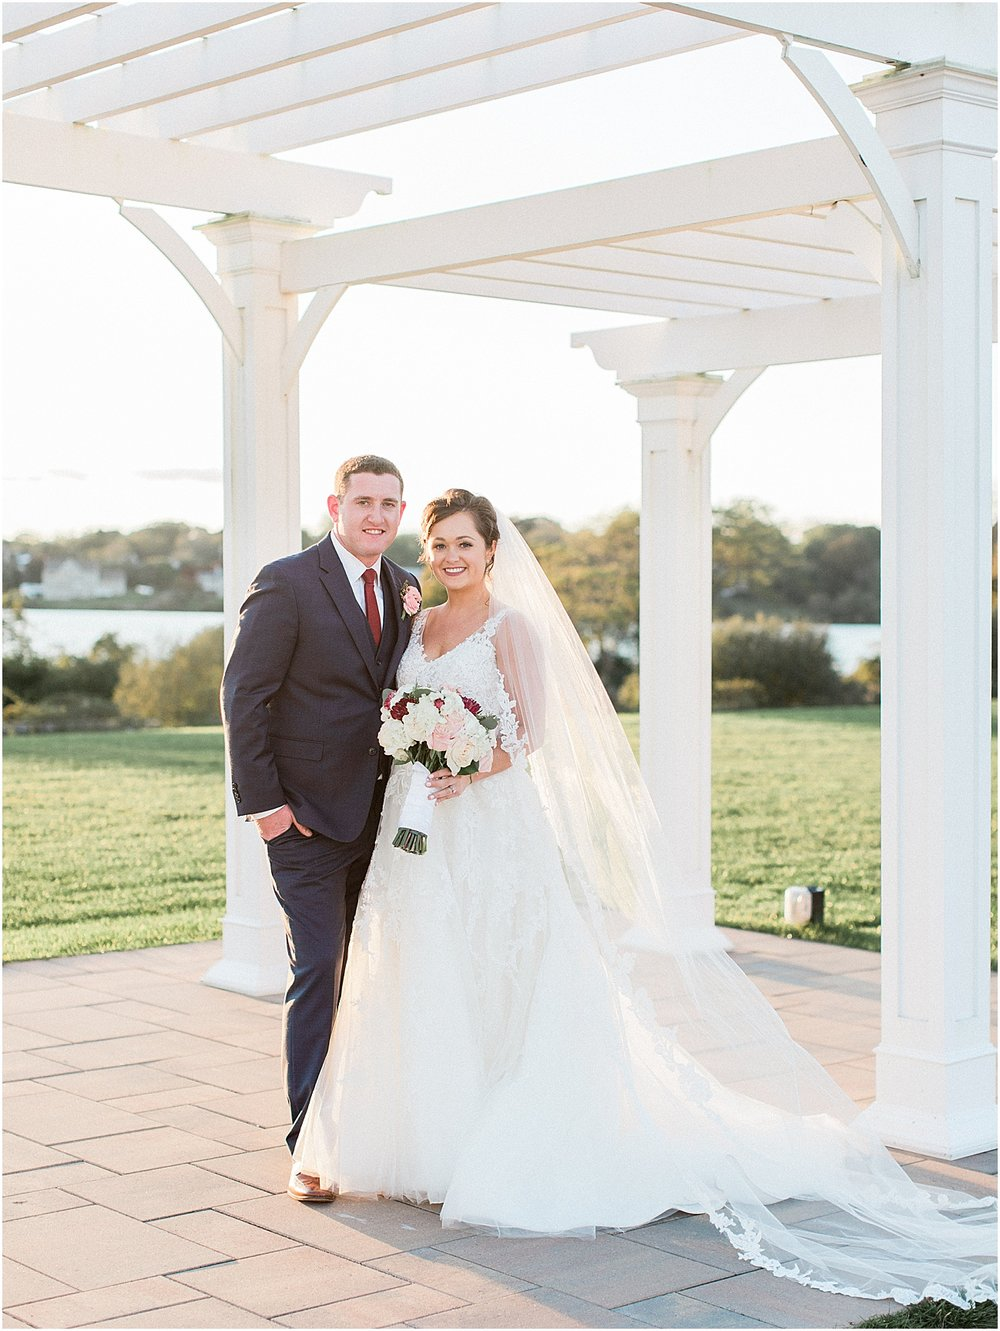 shannon_daniel_dan_atlantic_resort_saint_marys_st_mary_church_fall_newport_catholic_irish_cape_cod_boston_wedding_photographer_meredith_jane_photography_photo_1636.jpg